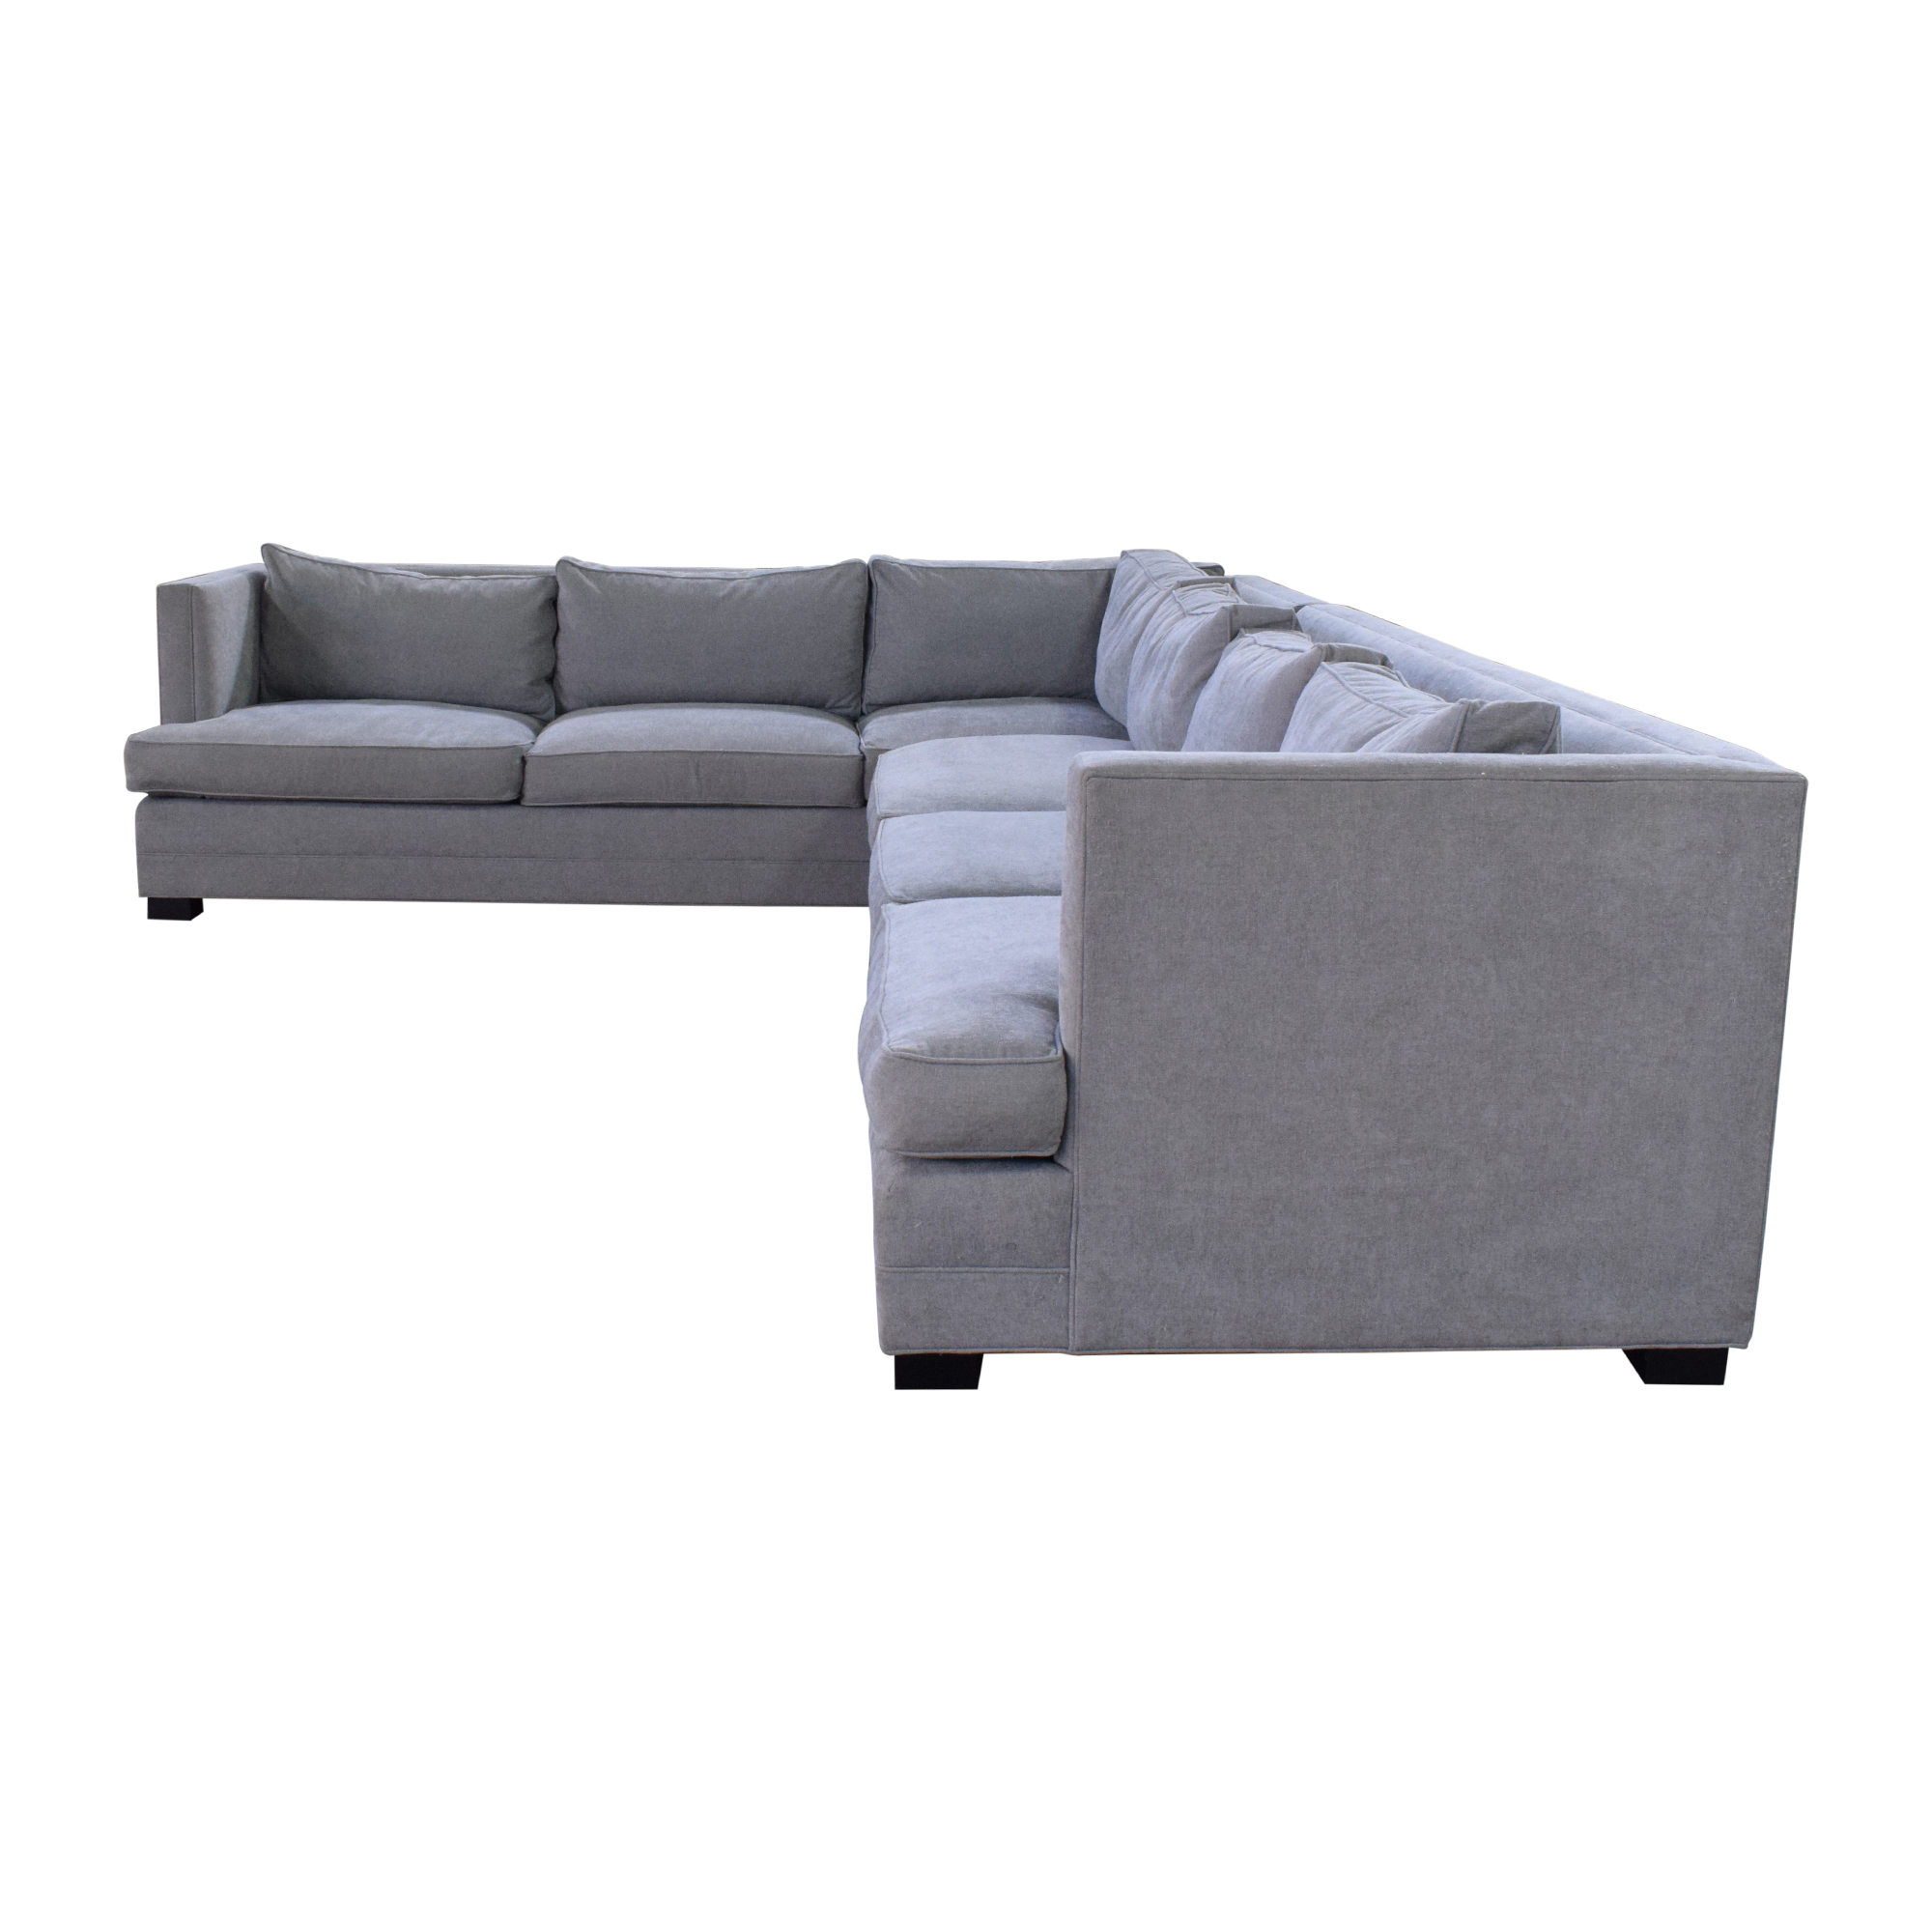 Mitchell Gold + Bob Williams Mitchell Gold + Bob Williams Keaton Shelter Sectional Sofa coupon